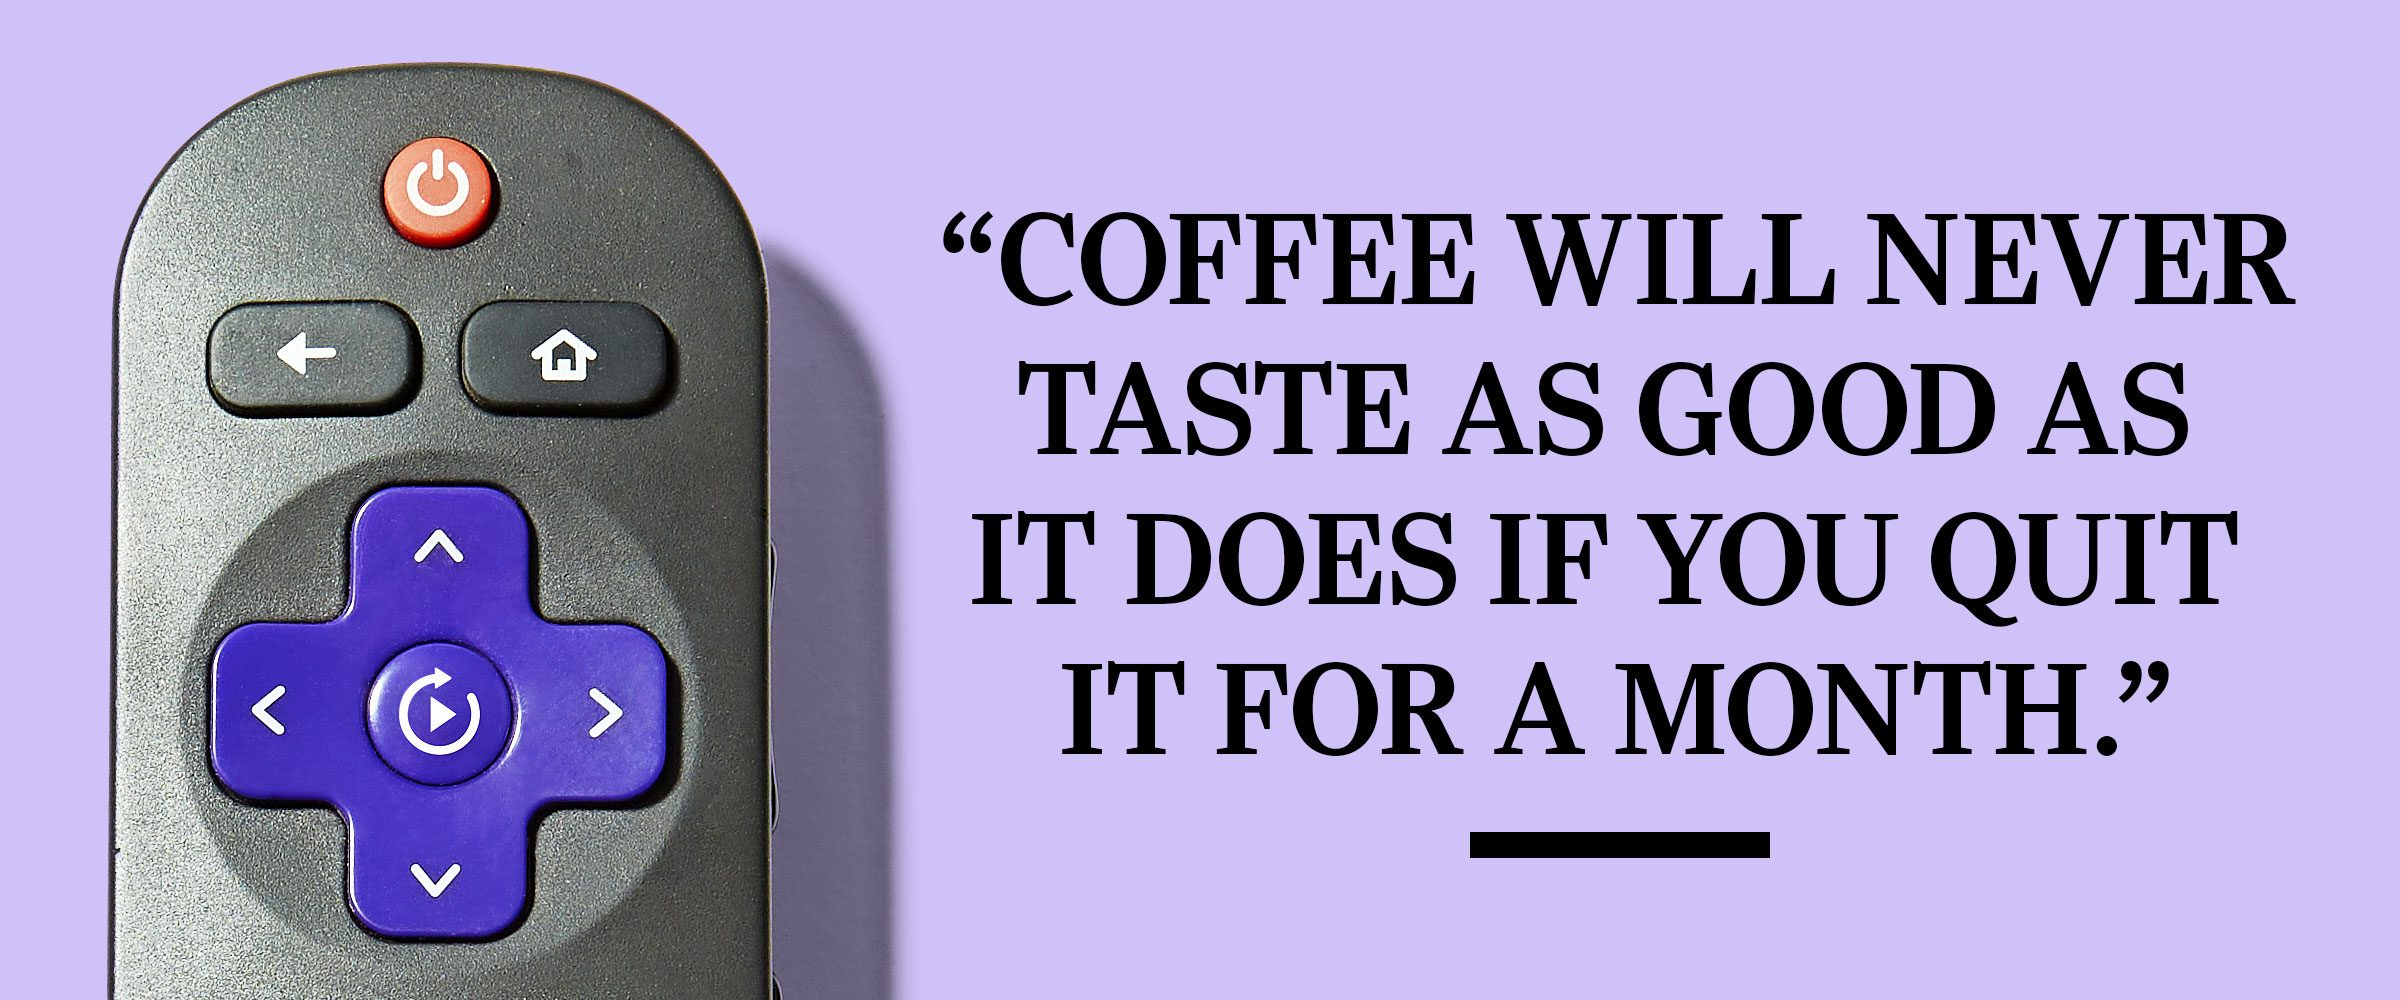 """Text: """"Coffe will never taste as good as it does if you quit it for a month."""""""